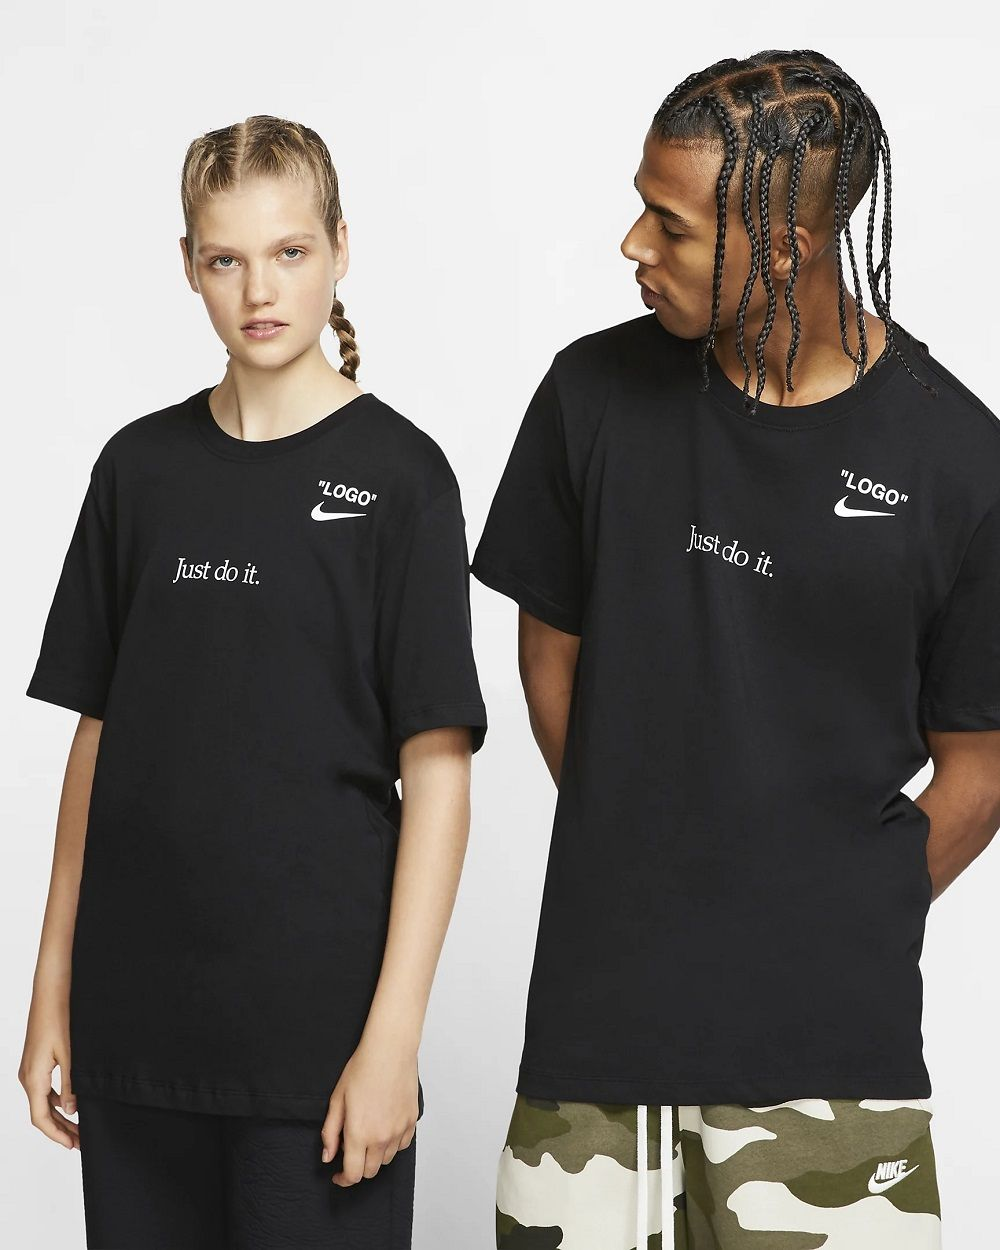 Nike Times Off White T Shirt Drop With Serena S French Open Match